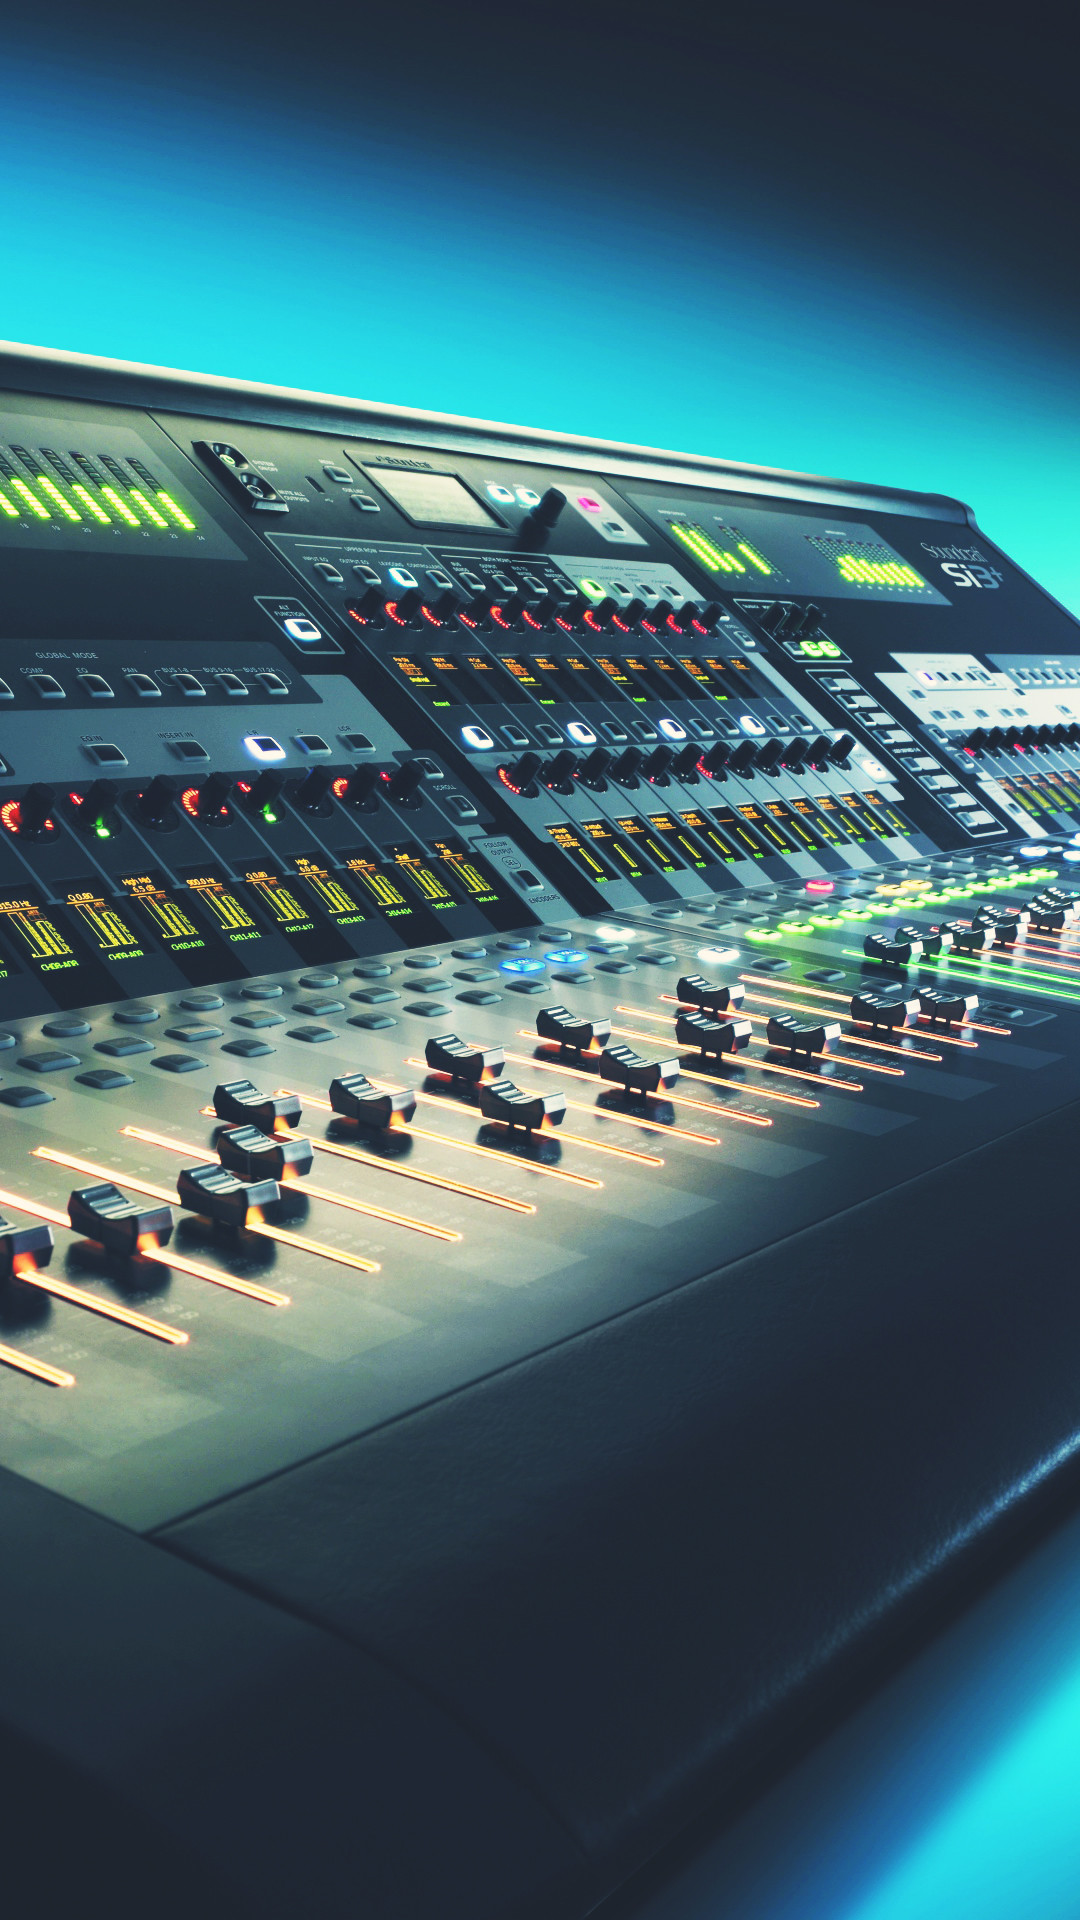 1080x1920 Digital Mixing Console Music Studio Android Wallpaper ...